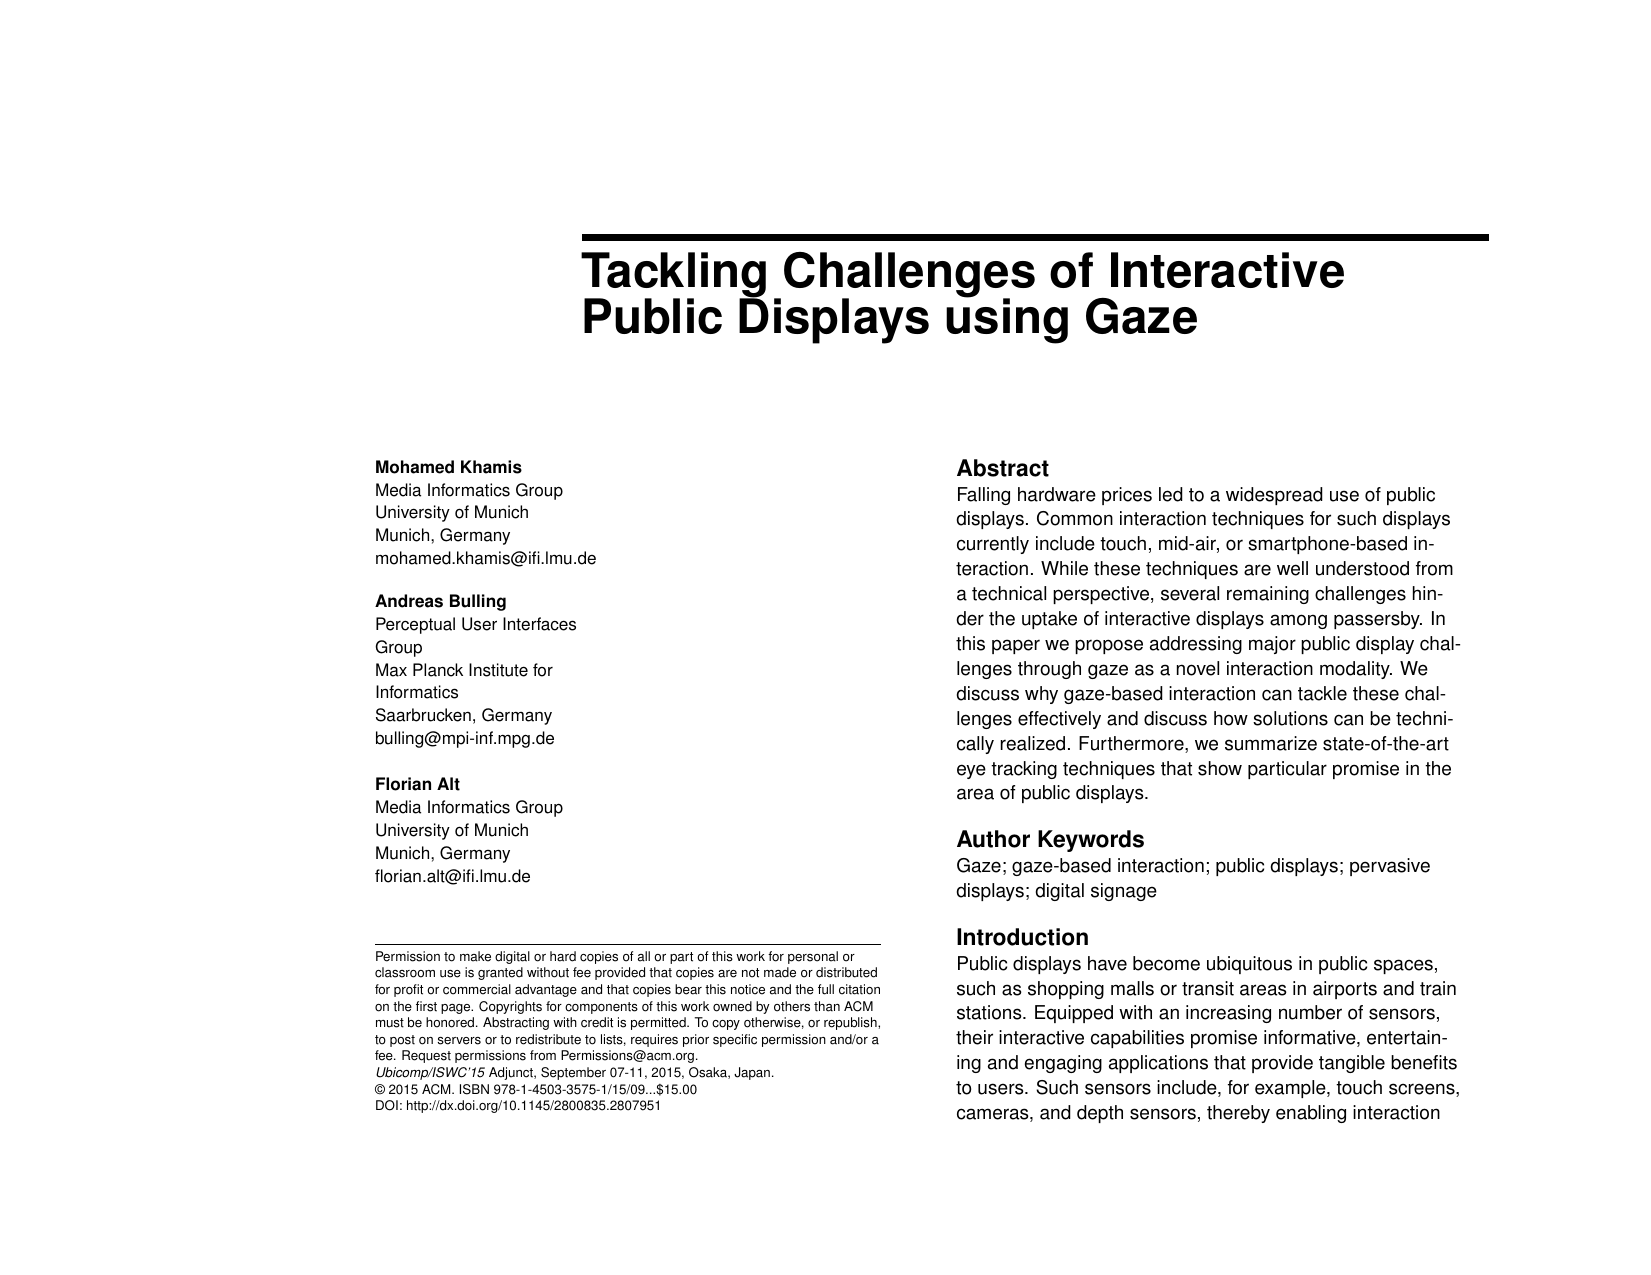 Tackling Challenges of Interactive Public Displays using Gaze